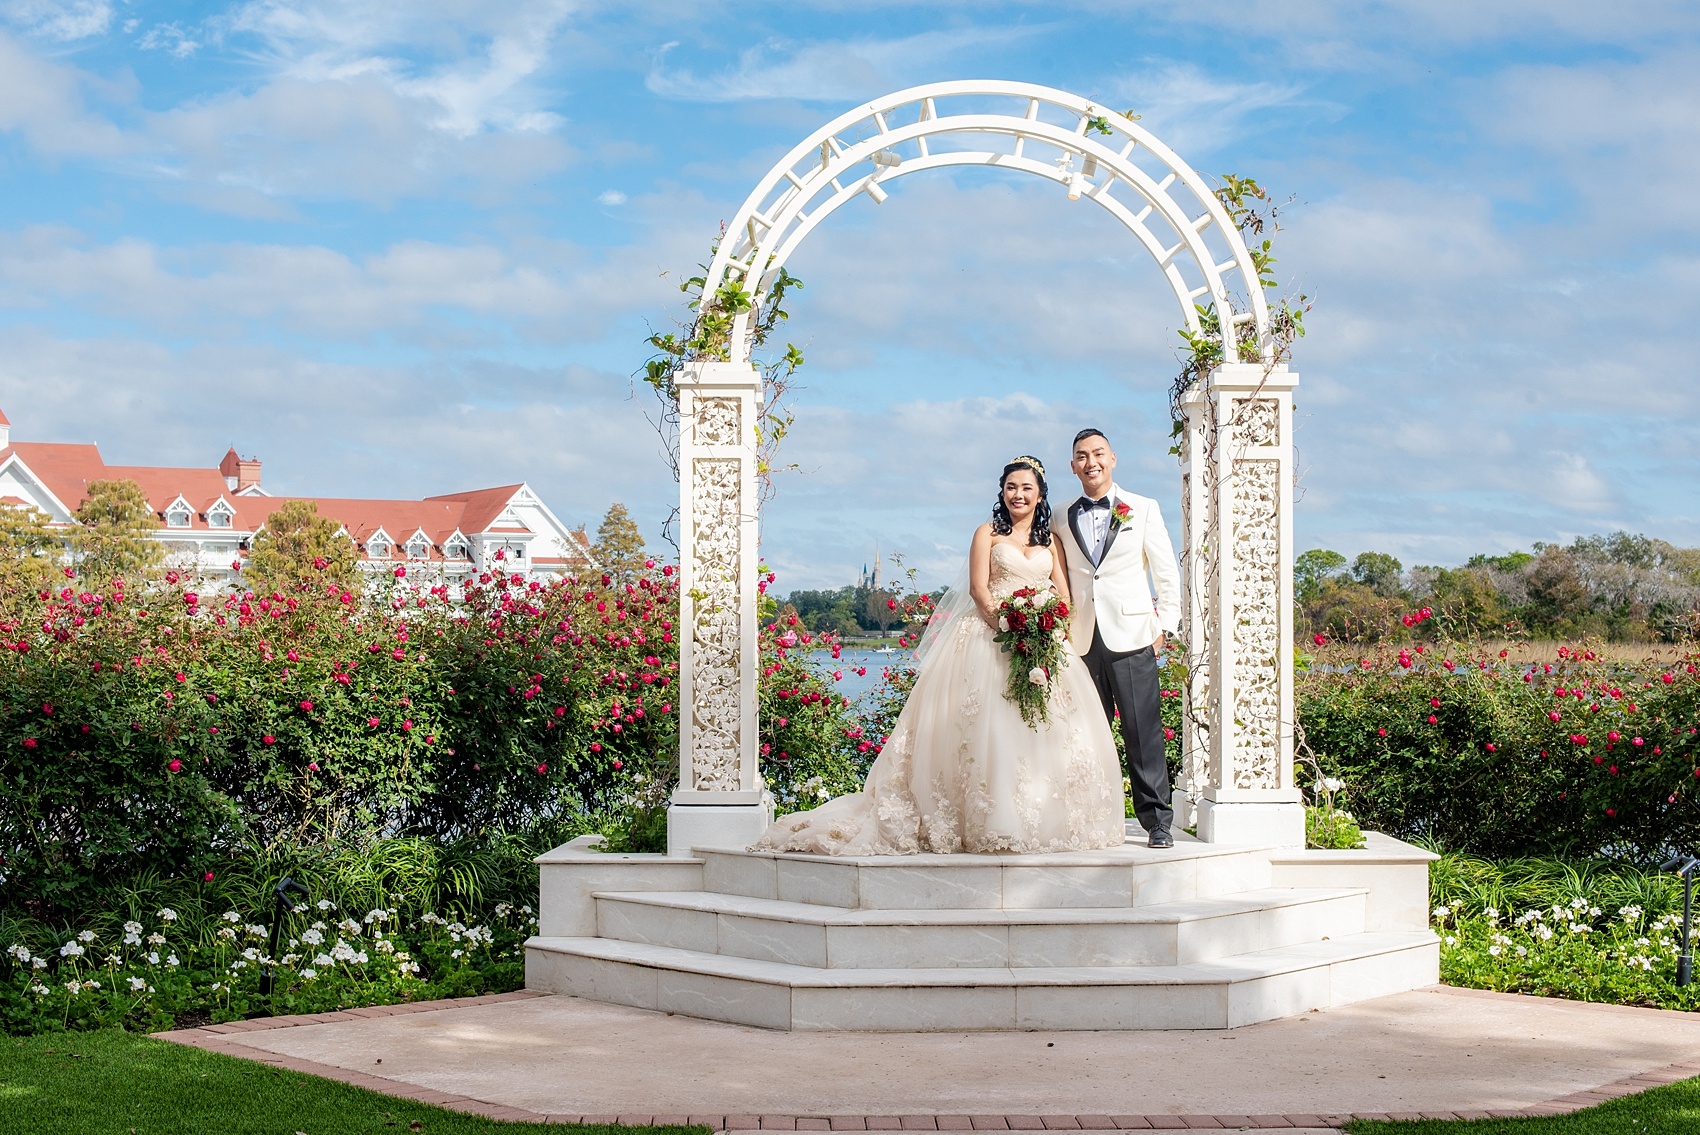 Walt Disney World photographs by Mikkel Paige Photography. The bride and groom had December pictures at the Grand Floridian Resort, Wedding Pavilion and Contemporary Hotel. It had a Beauty and the Beast theme and the bride wore a beautiful rose embroidered dress, befitting of a princess. Her red rose bouquet had holiday greenery and a cascading effect. The groom wore a white tuxedo. #disneywedding #disneybride #waltdisneyworld #DisneyWorldWedding #cascadingbouquet